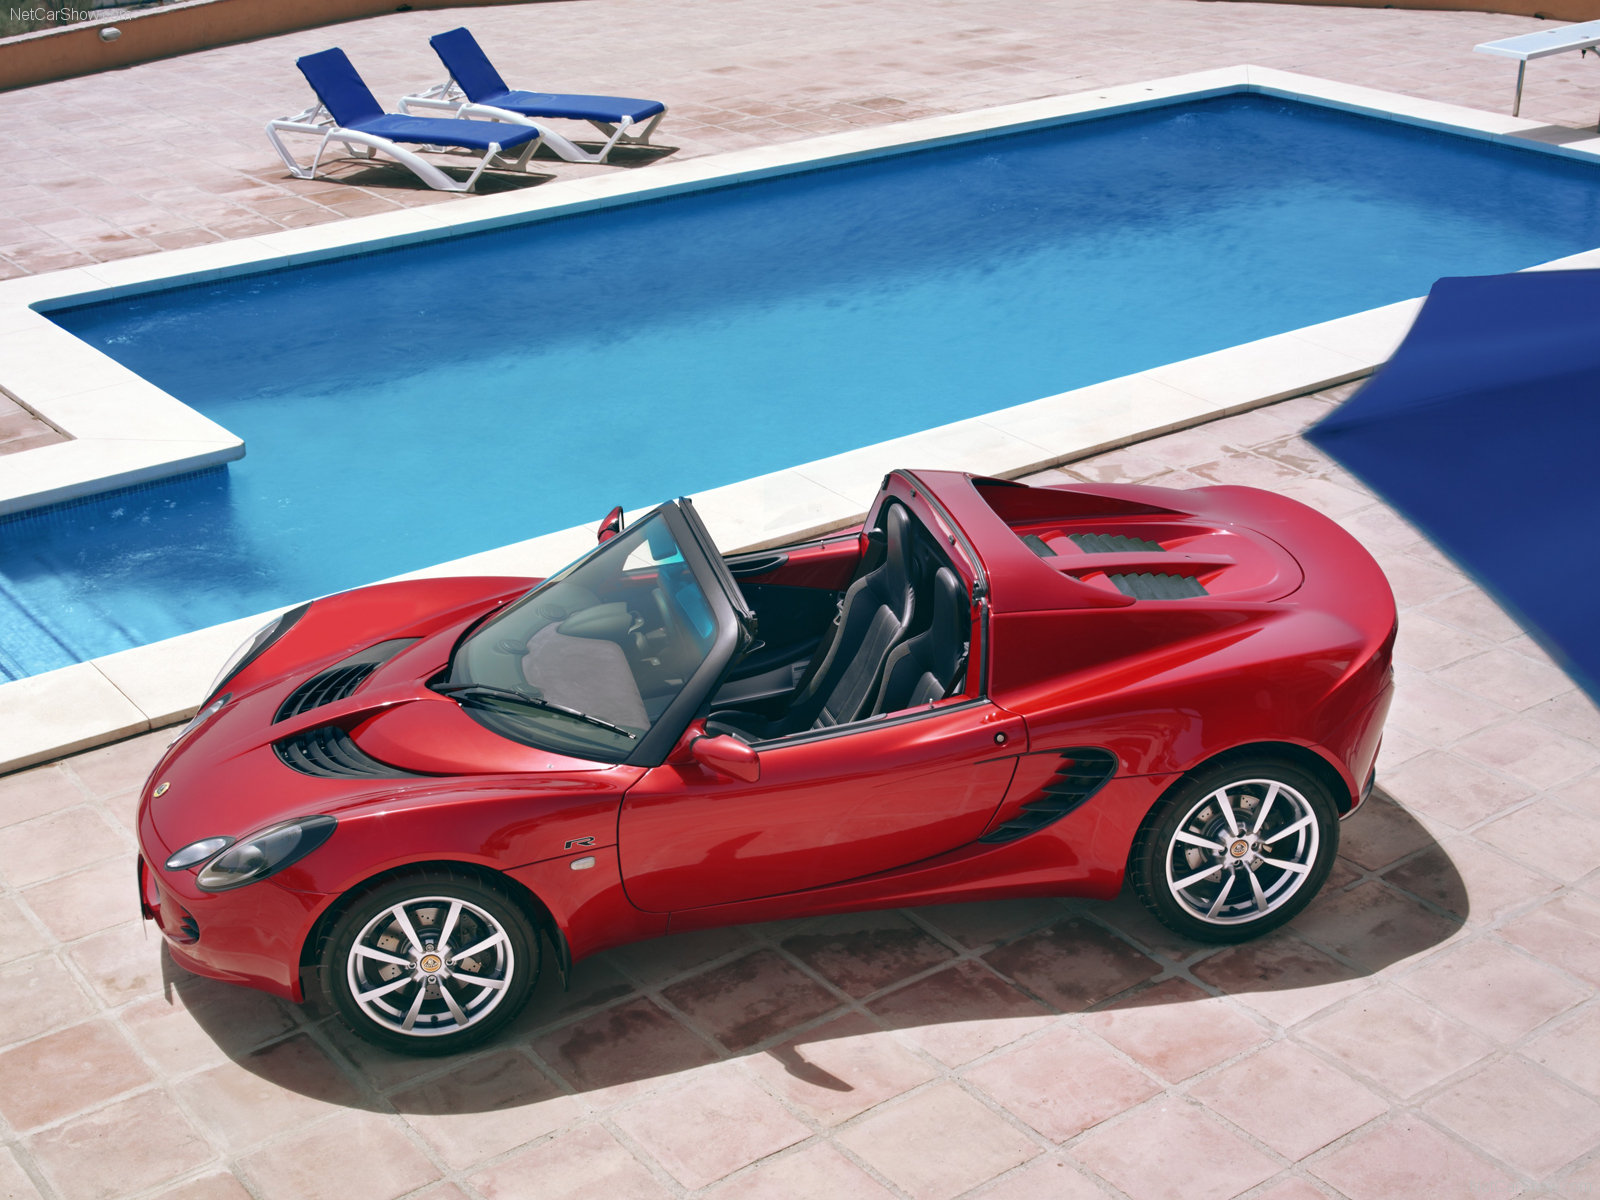 New Red Lotus Elise | Rides Info